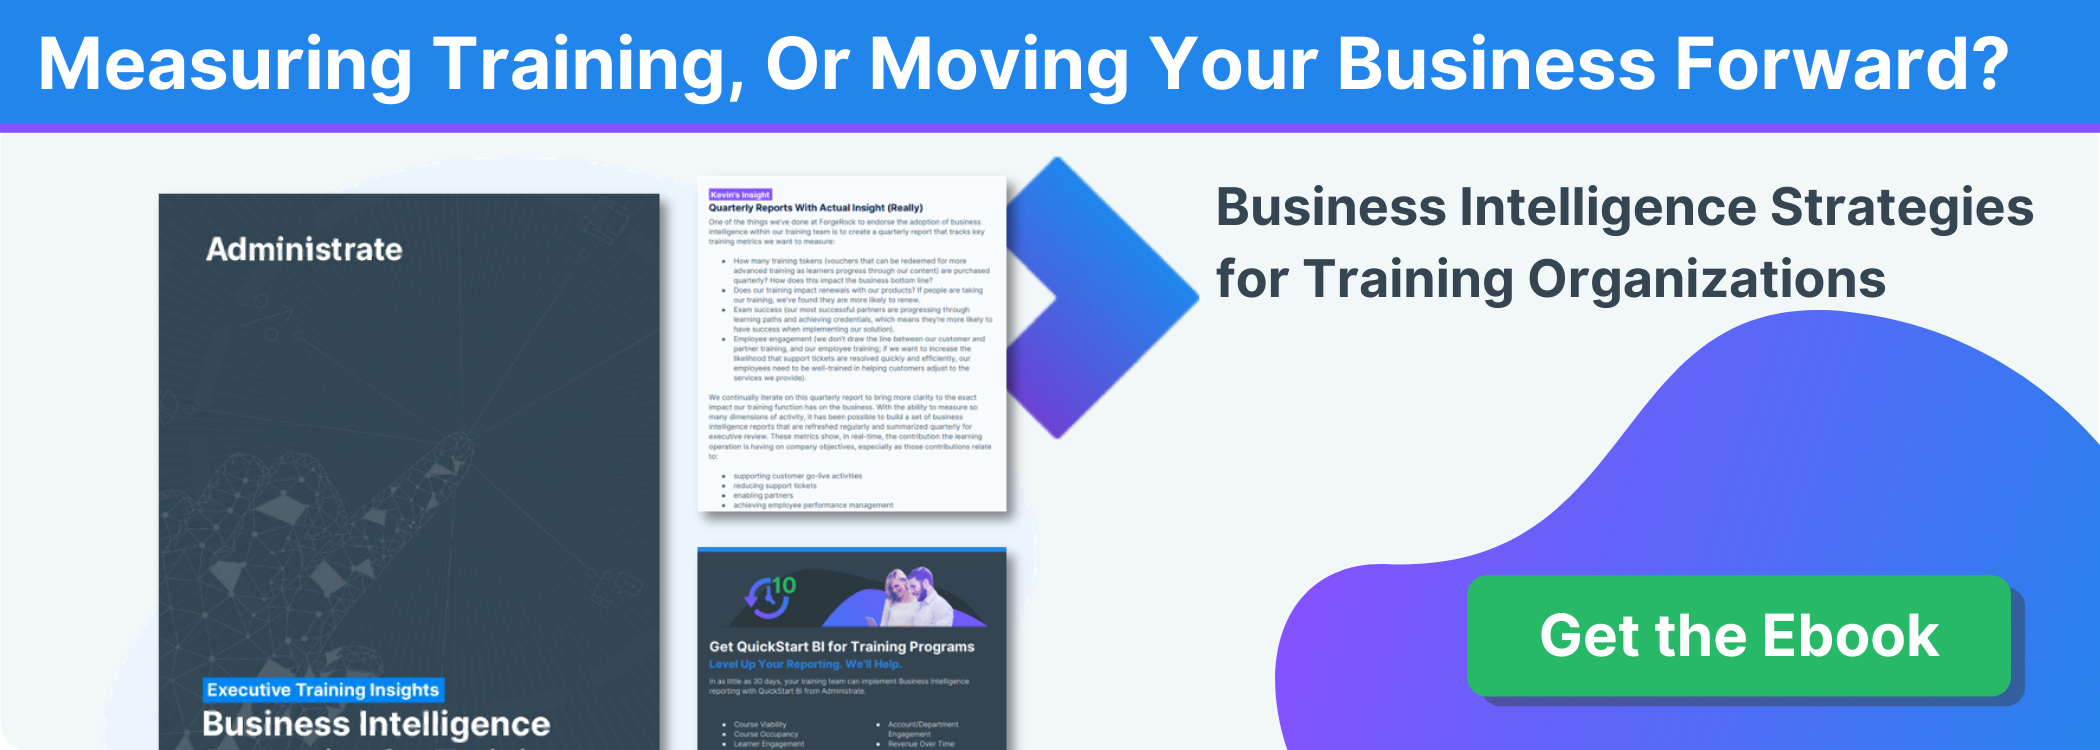 Get the Ebook: Business Intelligence Strategies for Training Organizations